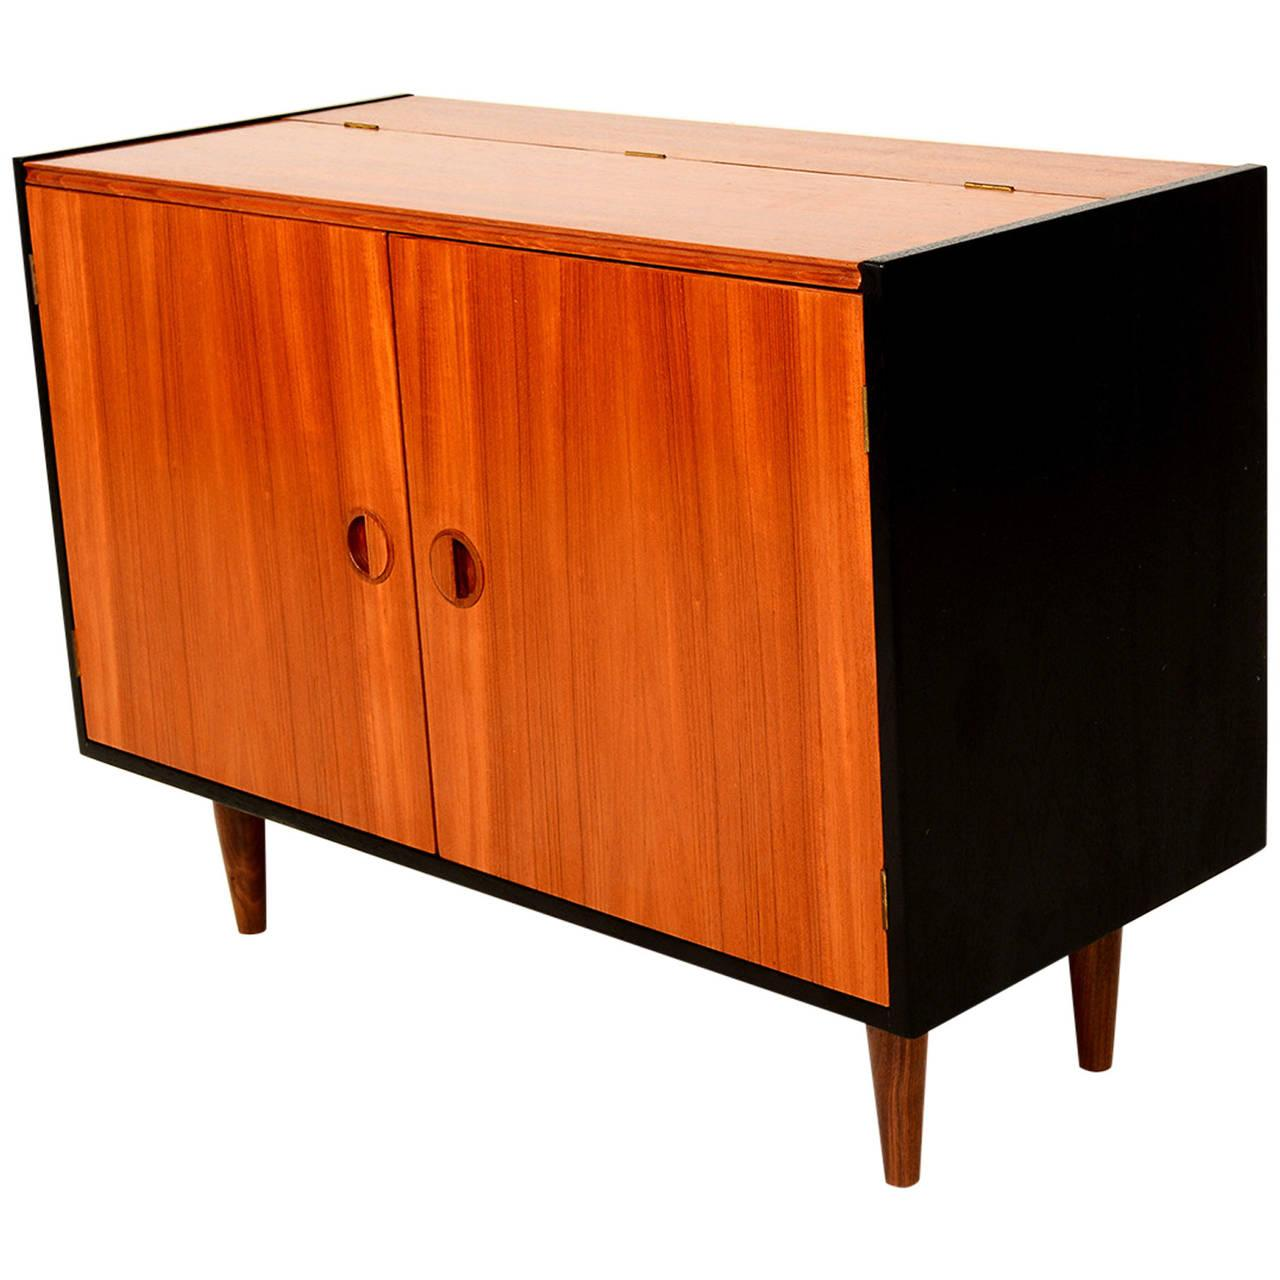 Mid century modern teak storage cabinet chairish for Modern teak kitchen cabinets